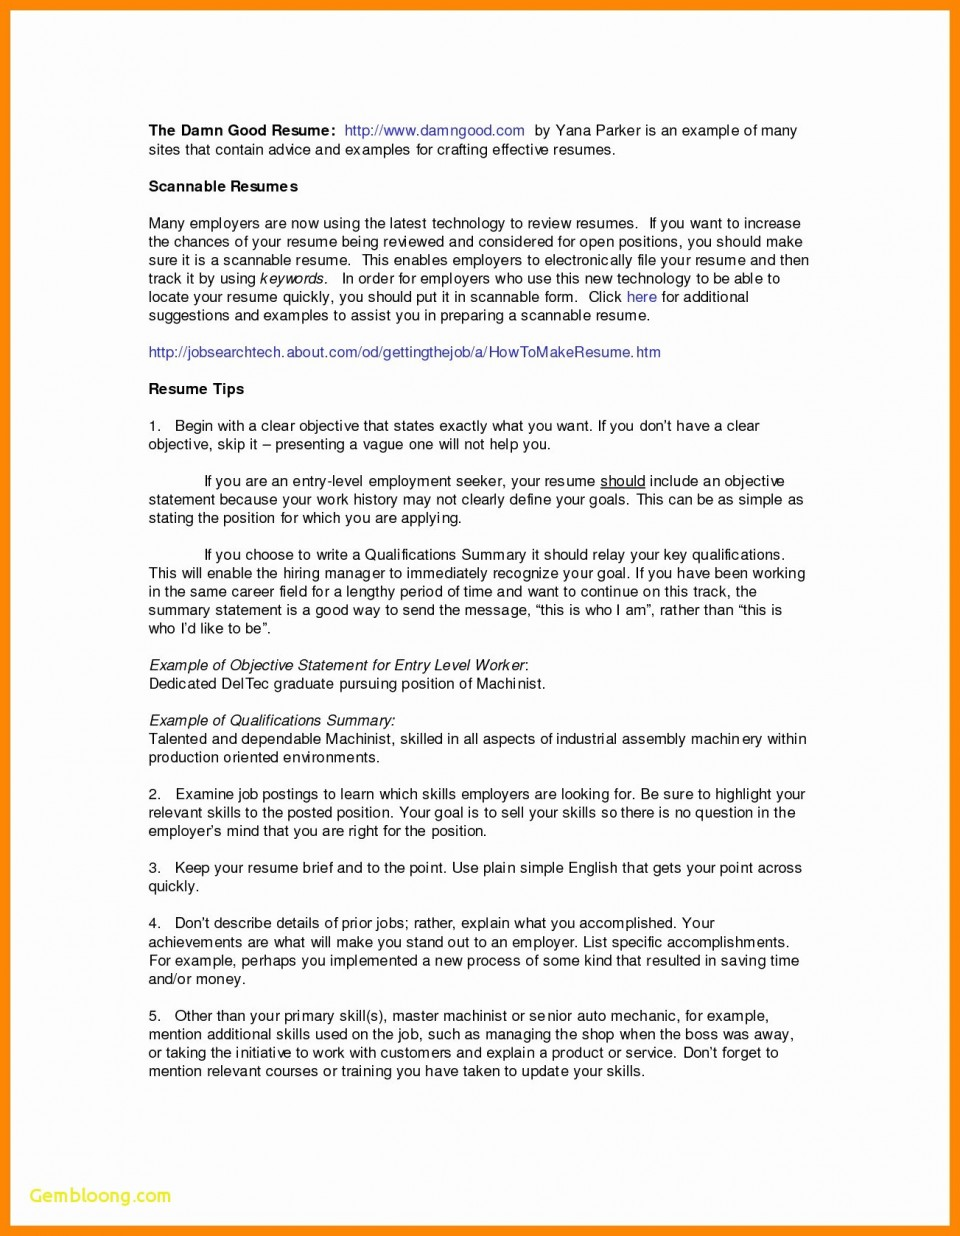 023 Research Paper Page New Resume Summary Examples Entry Level Inspirational Ceo Pay Of For Stupendous Papers Gap Performance Why Do You Have To 960